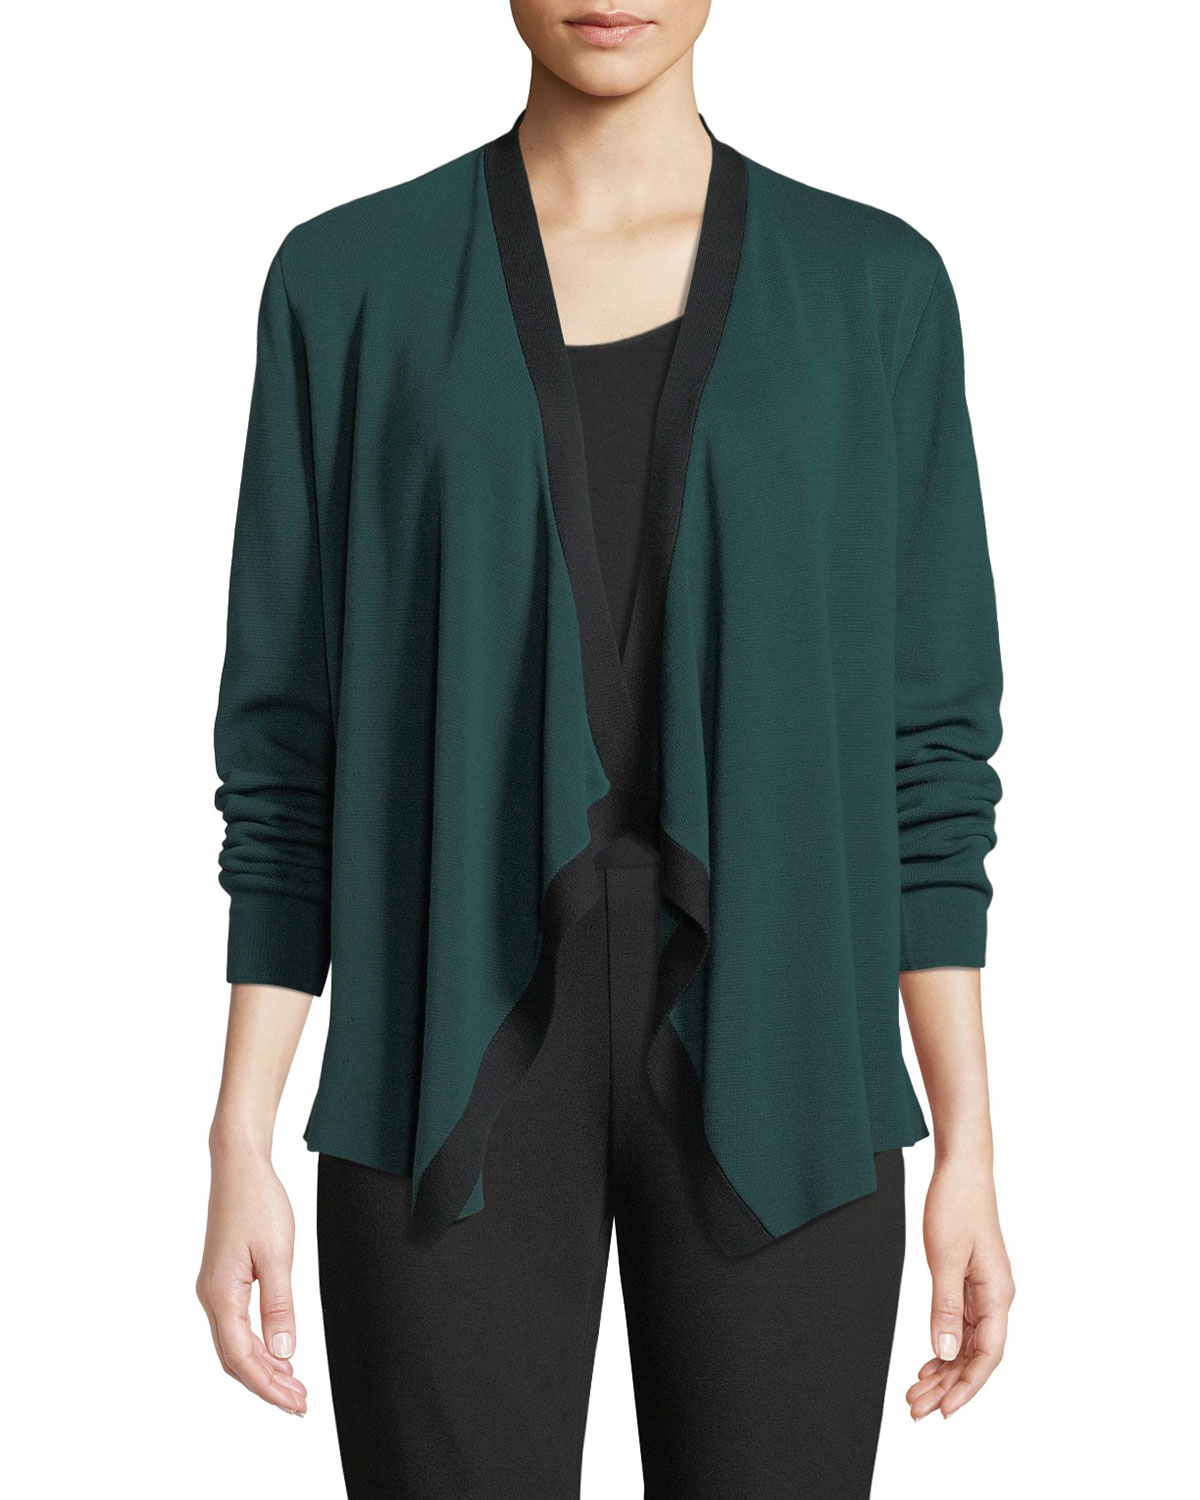 Angled-Front Colorblock Cardigan, Petite